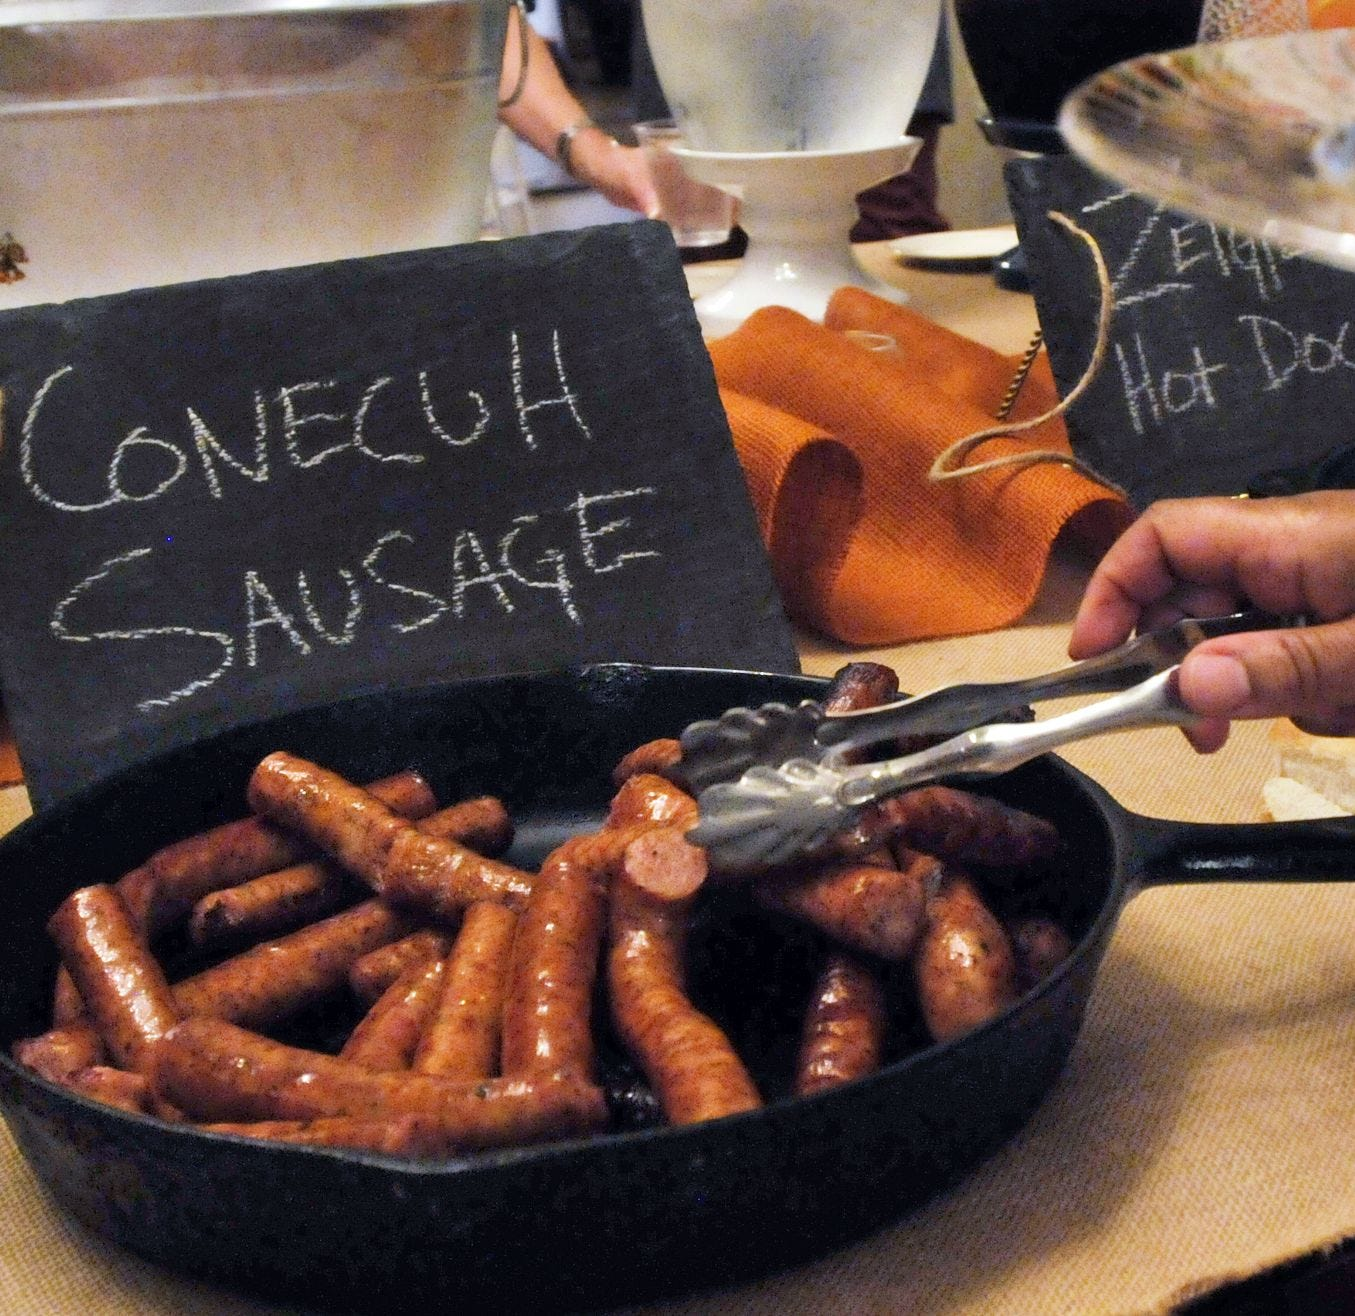 You never sausage a thing: Conecuh is so popular, it has its own fan club